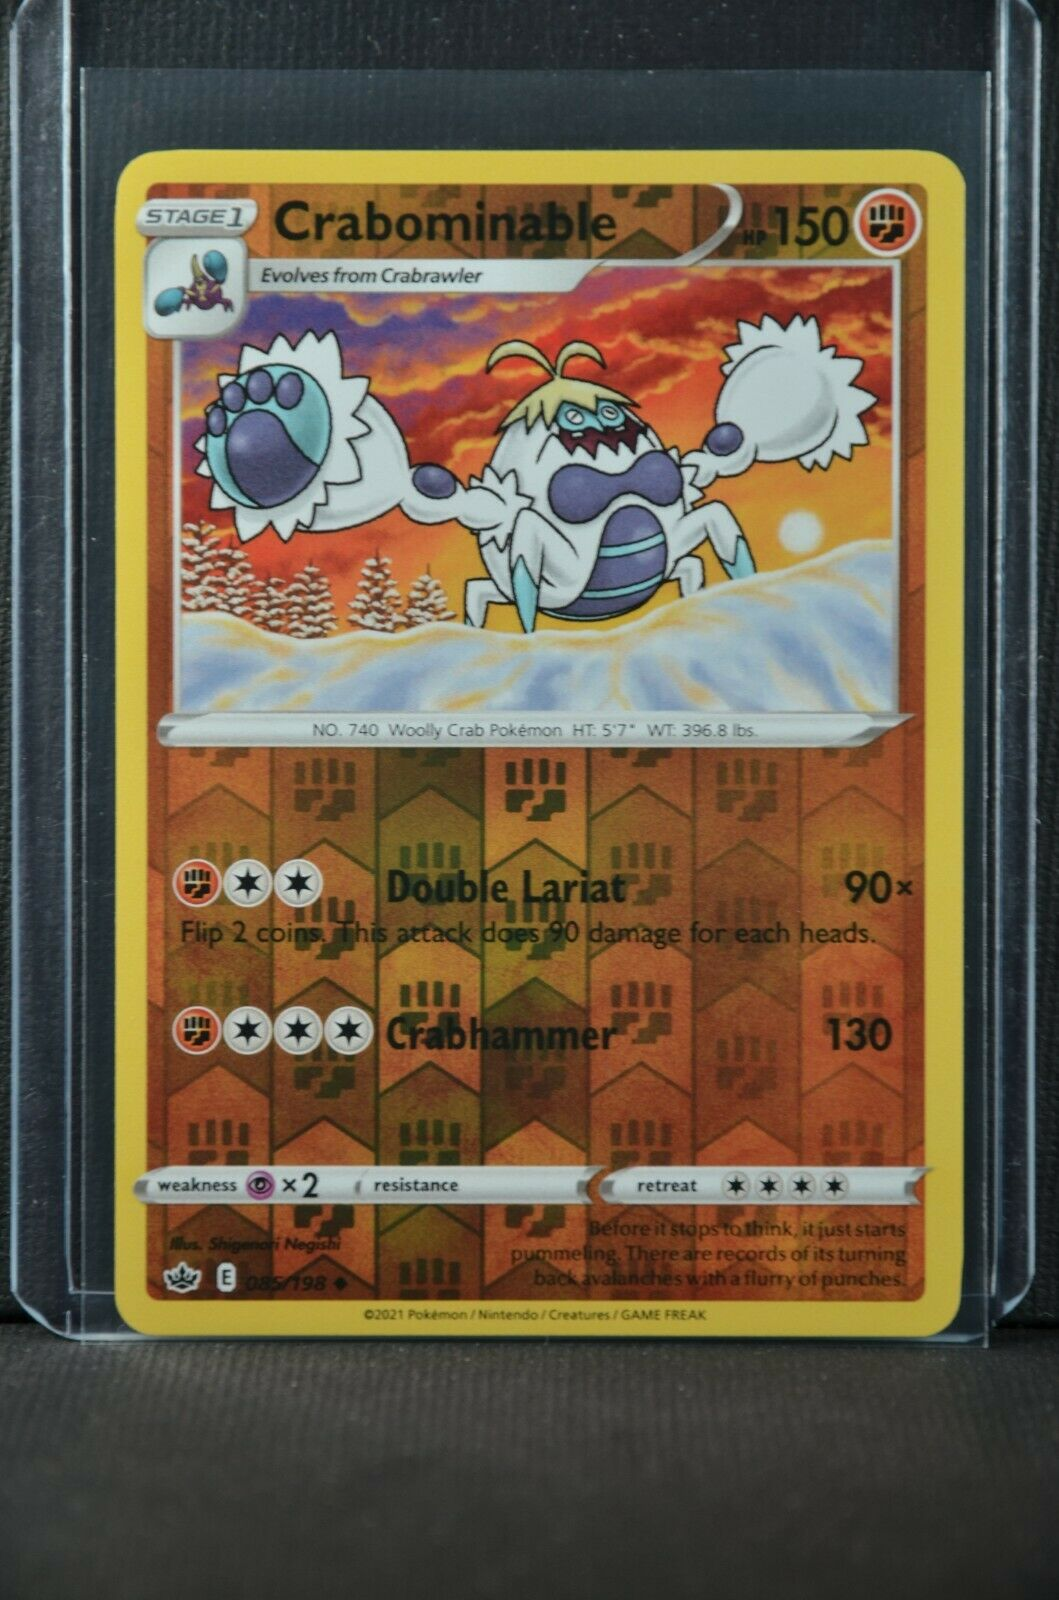 POKEMON TCG CARD Crabominable 085/198 Chilling Reign 2021 REVERSE HOLO - NM/MT